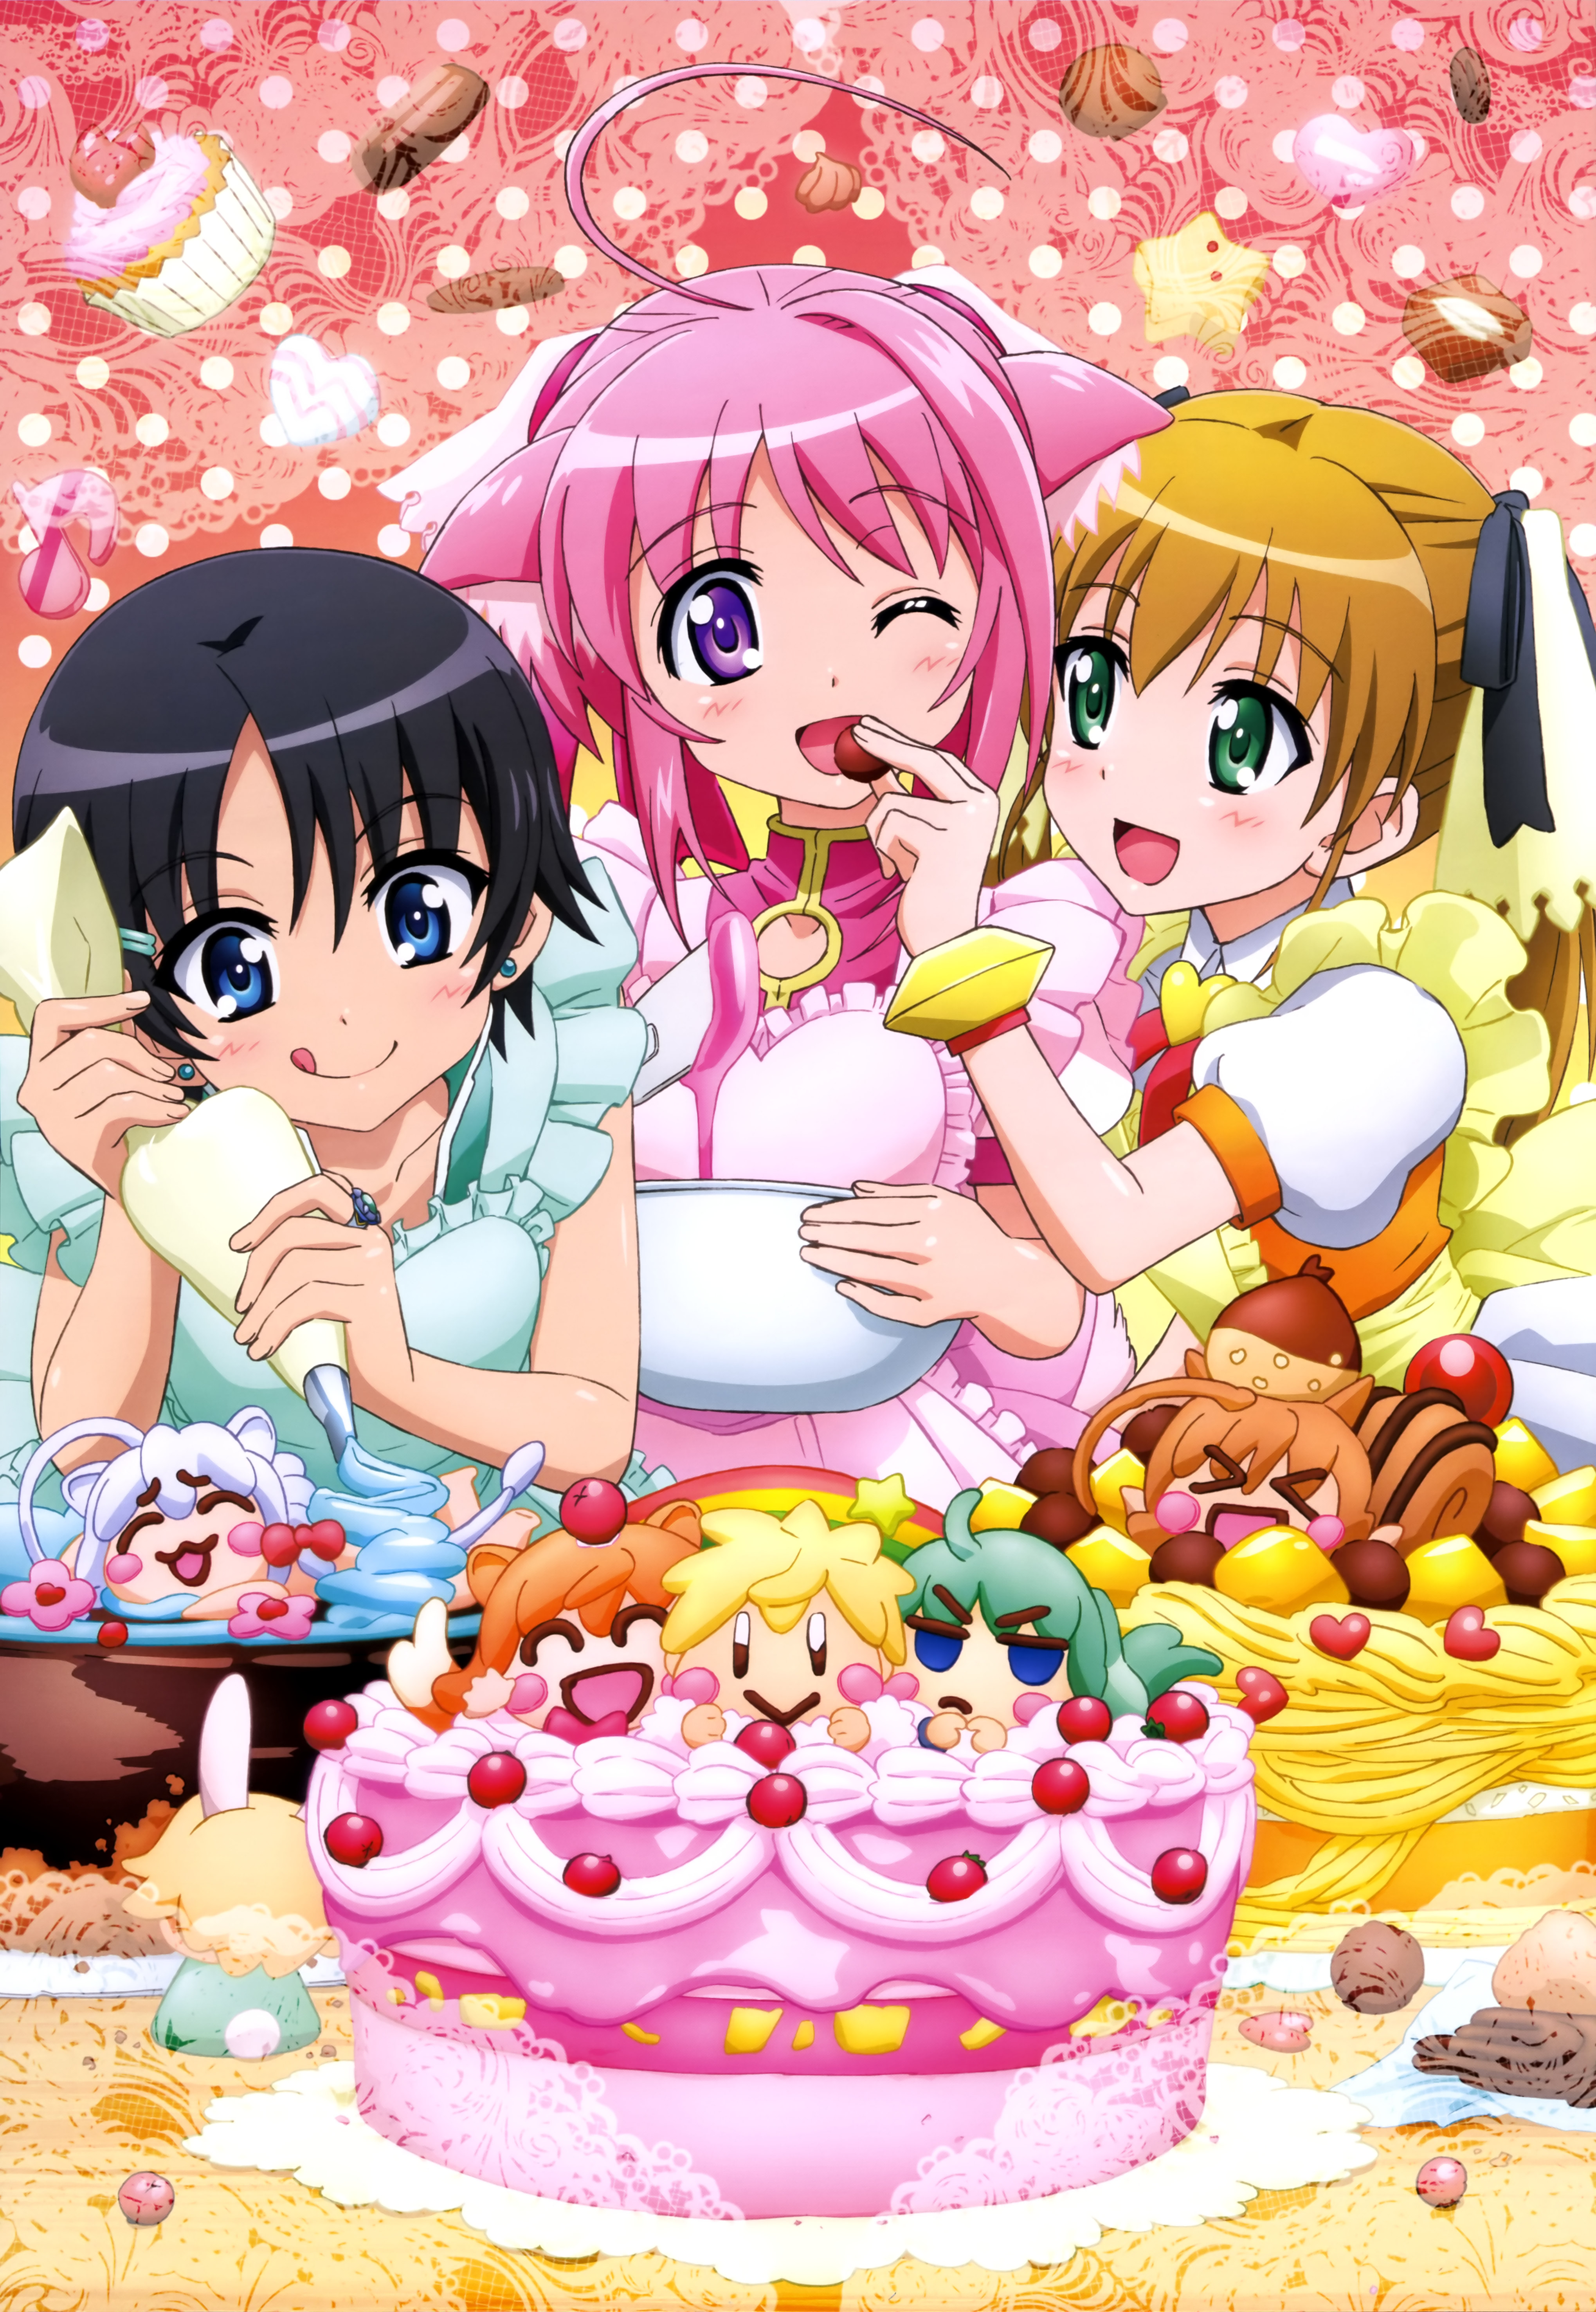 NyanType Magazine March 2015 anime posters Haruhichan.com dog days 3 poster